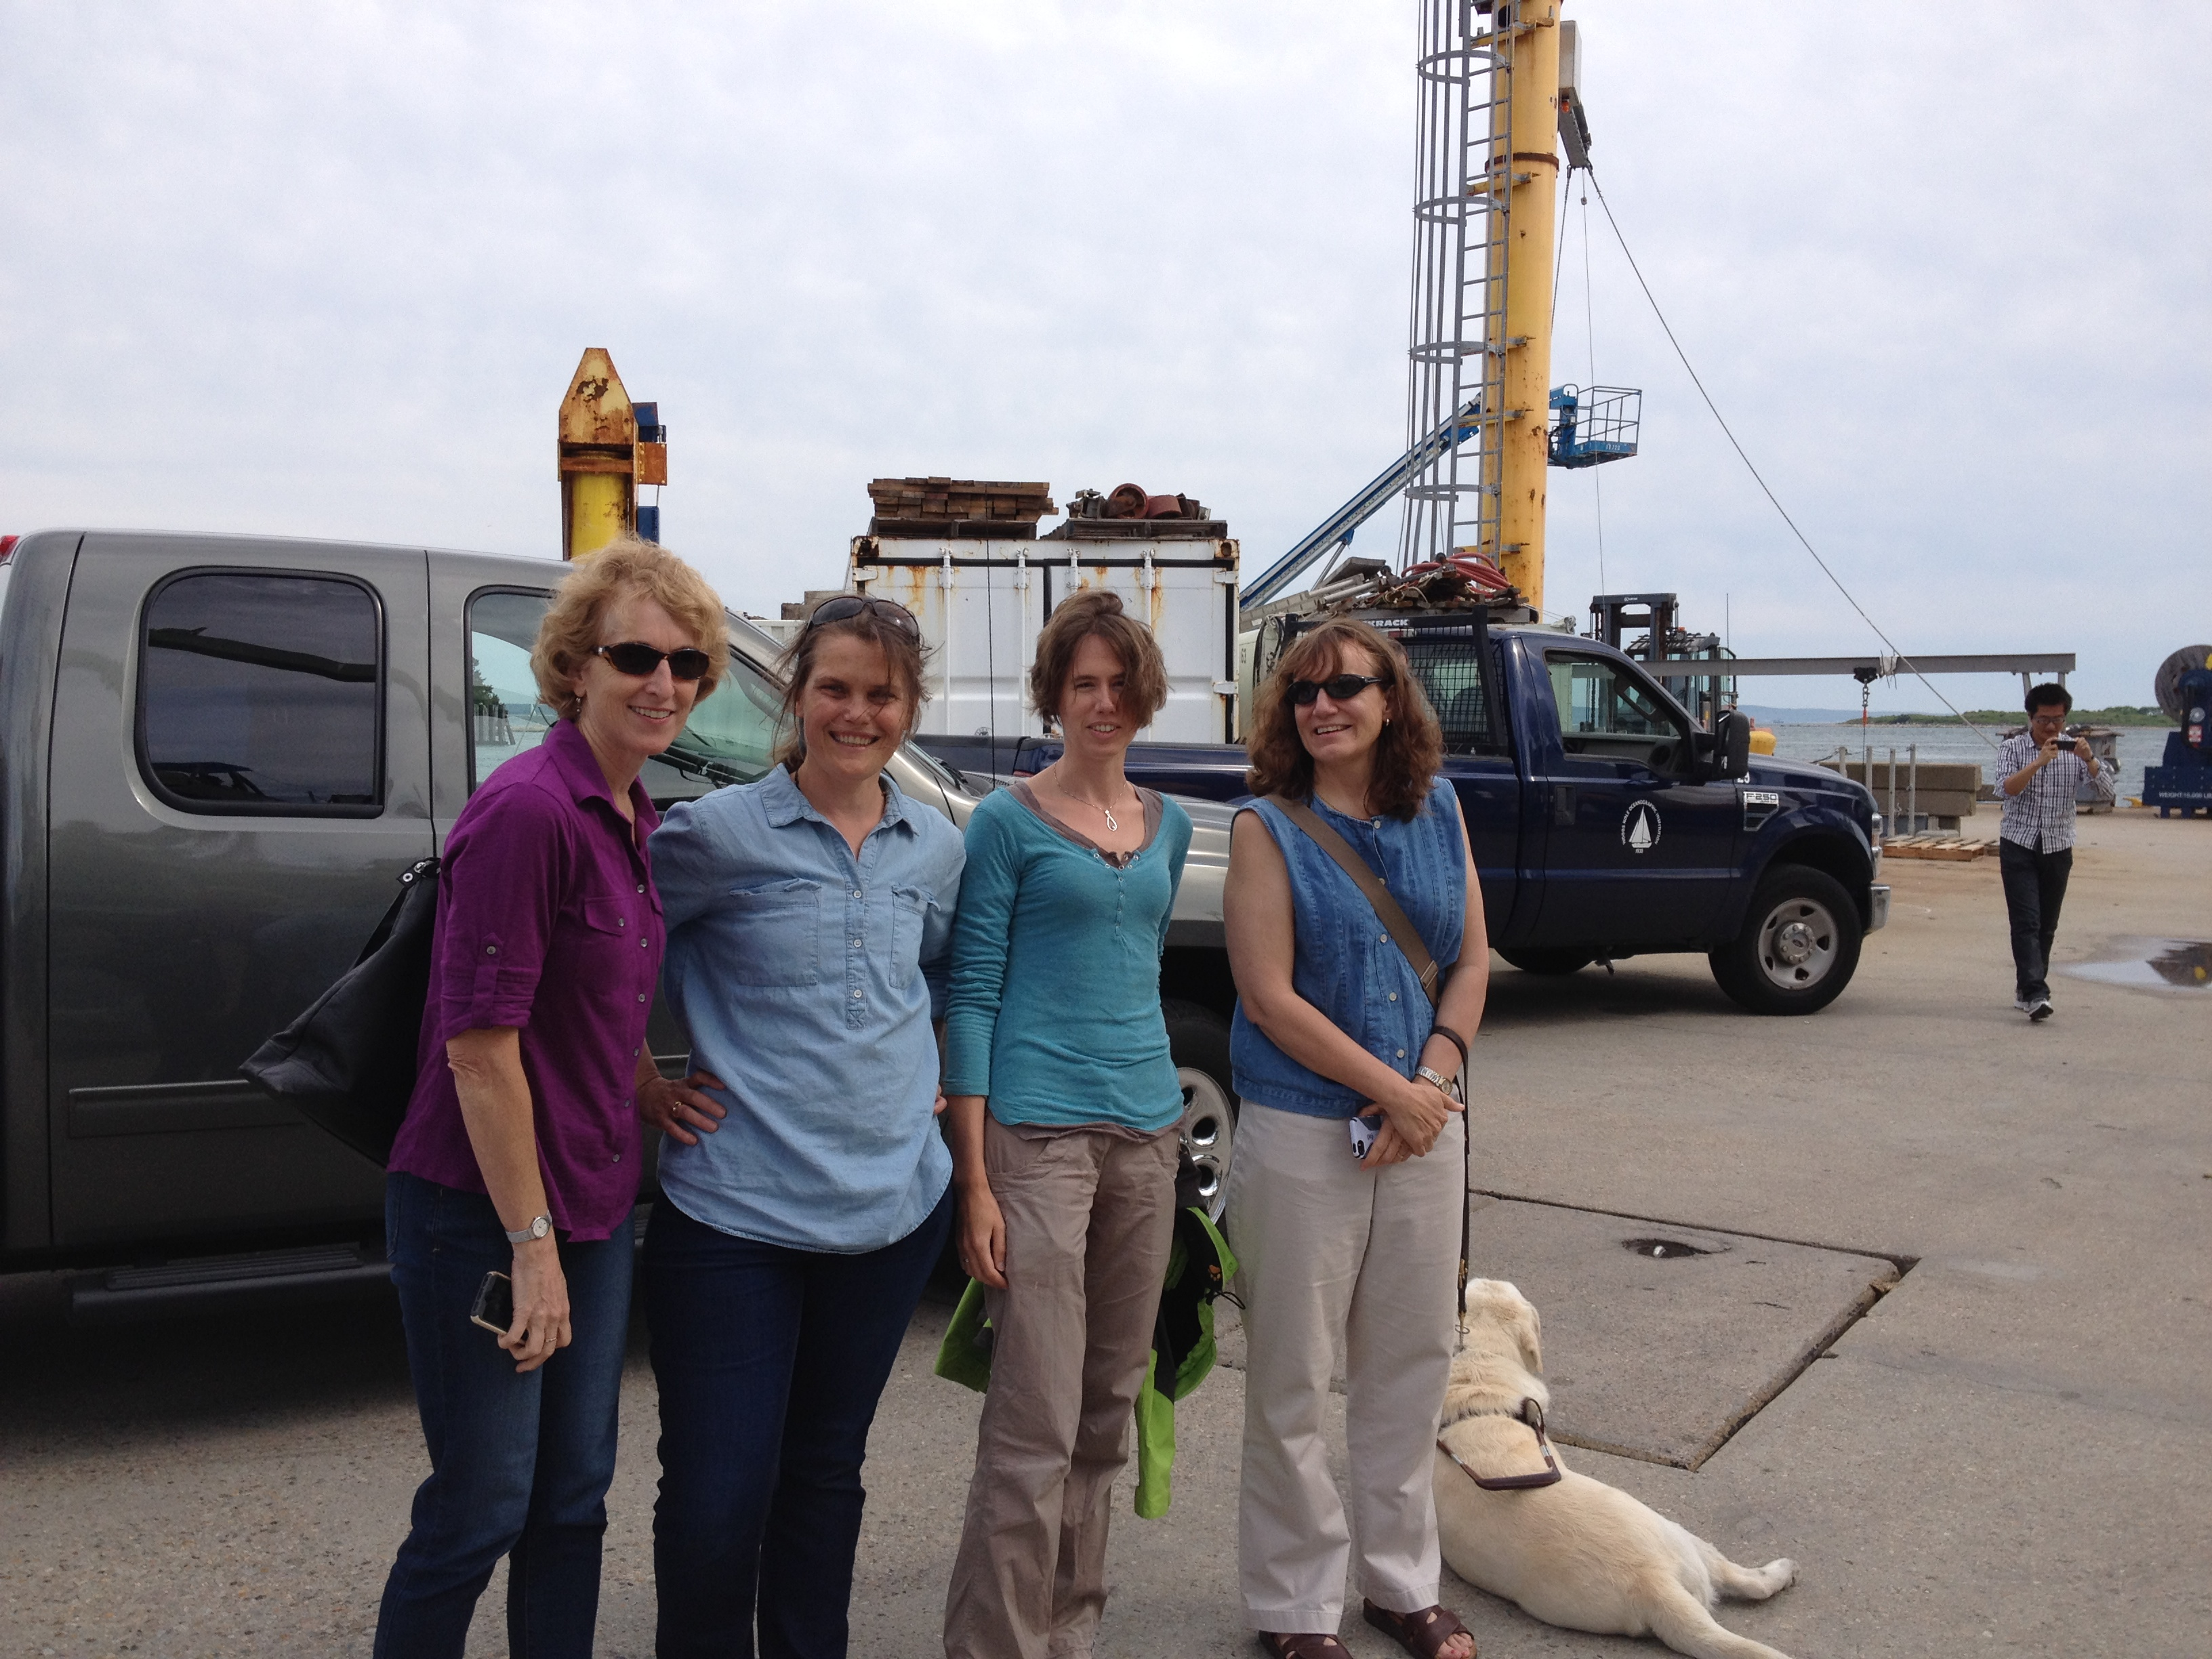 Susan Lozier, Heather Furey, Femke de Jong and Amy Bower gather on the WHOI dock on June 19th to see the RV Knorr off on its first OSNAP cruise.